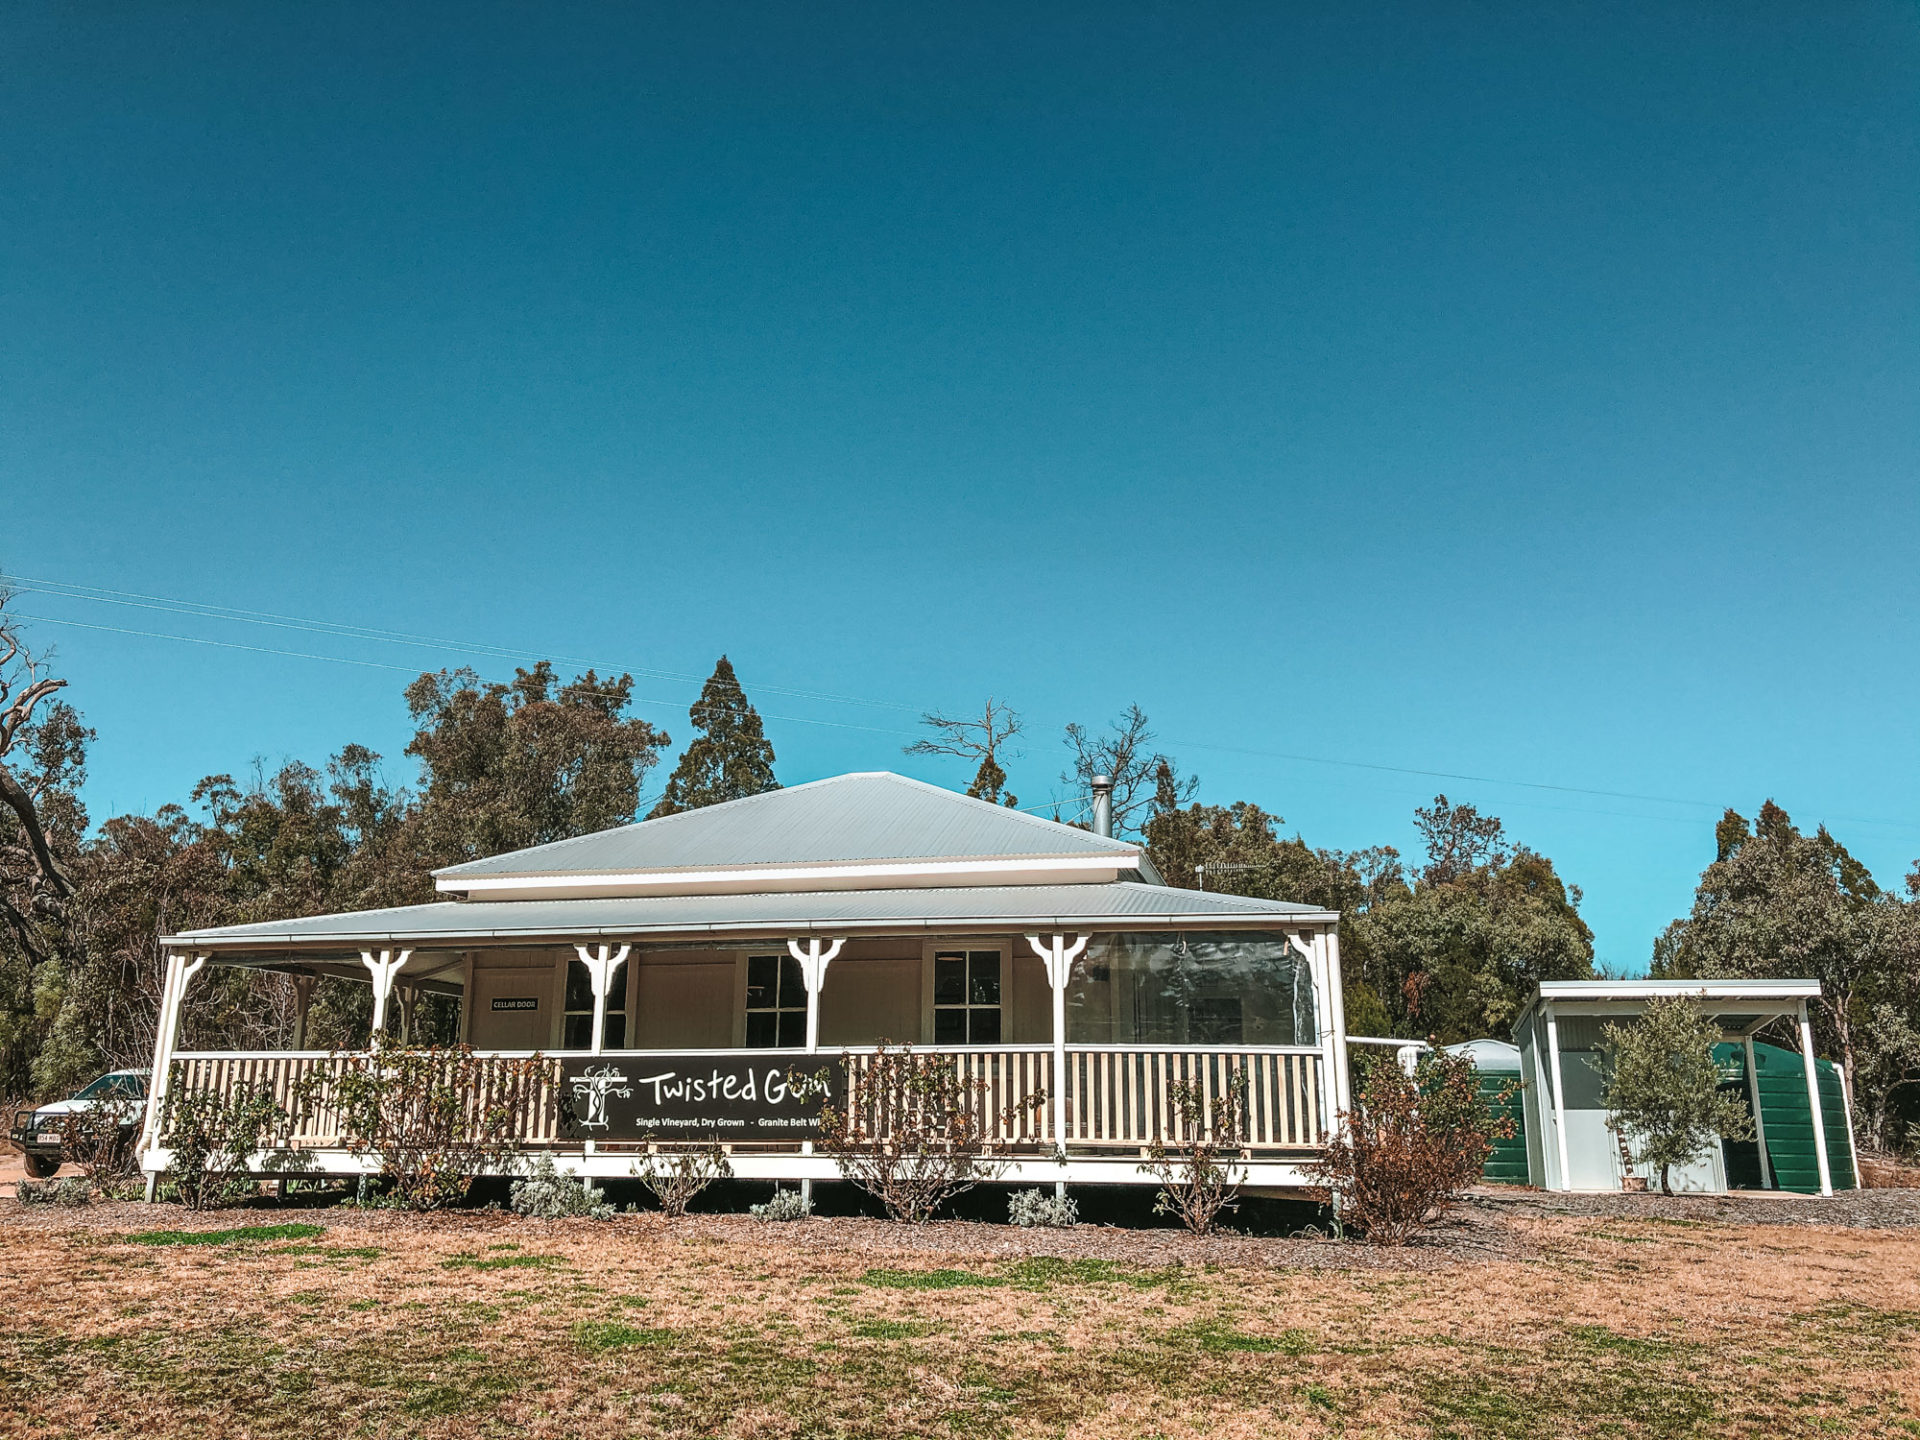 Twisted Gum Winery, things to do in Stanthorpe